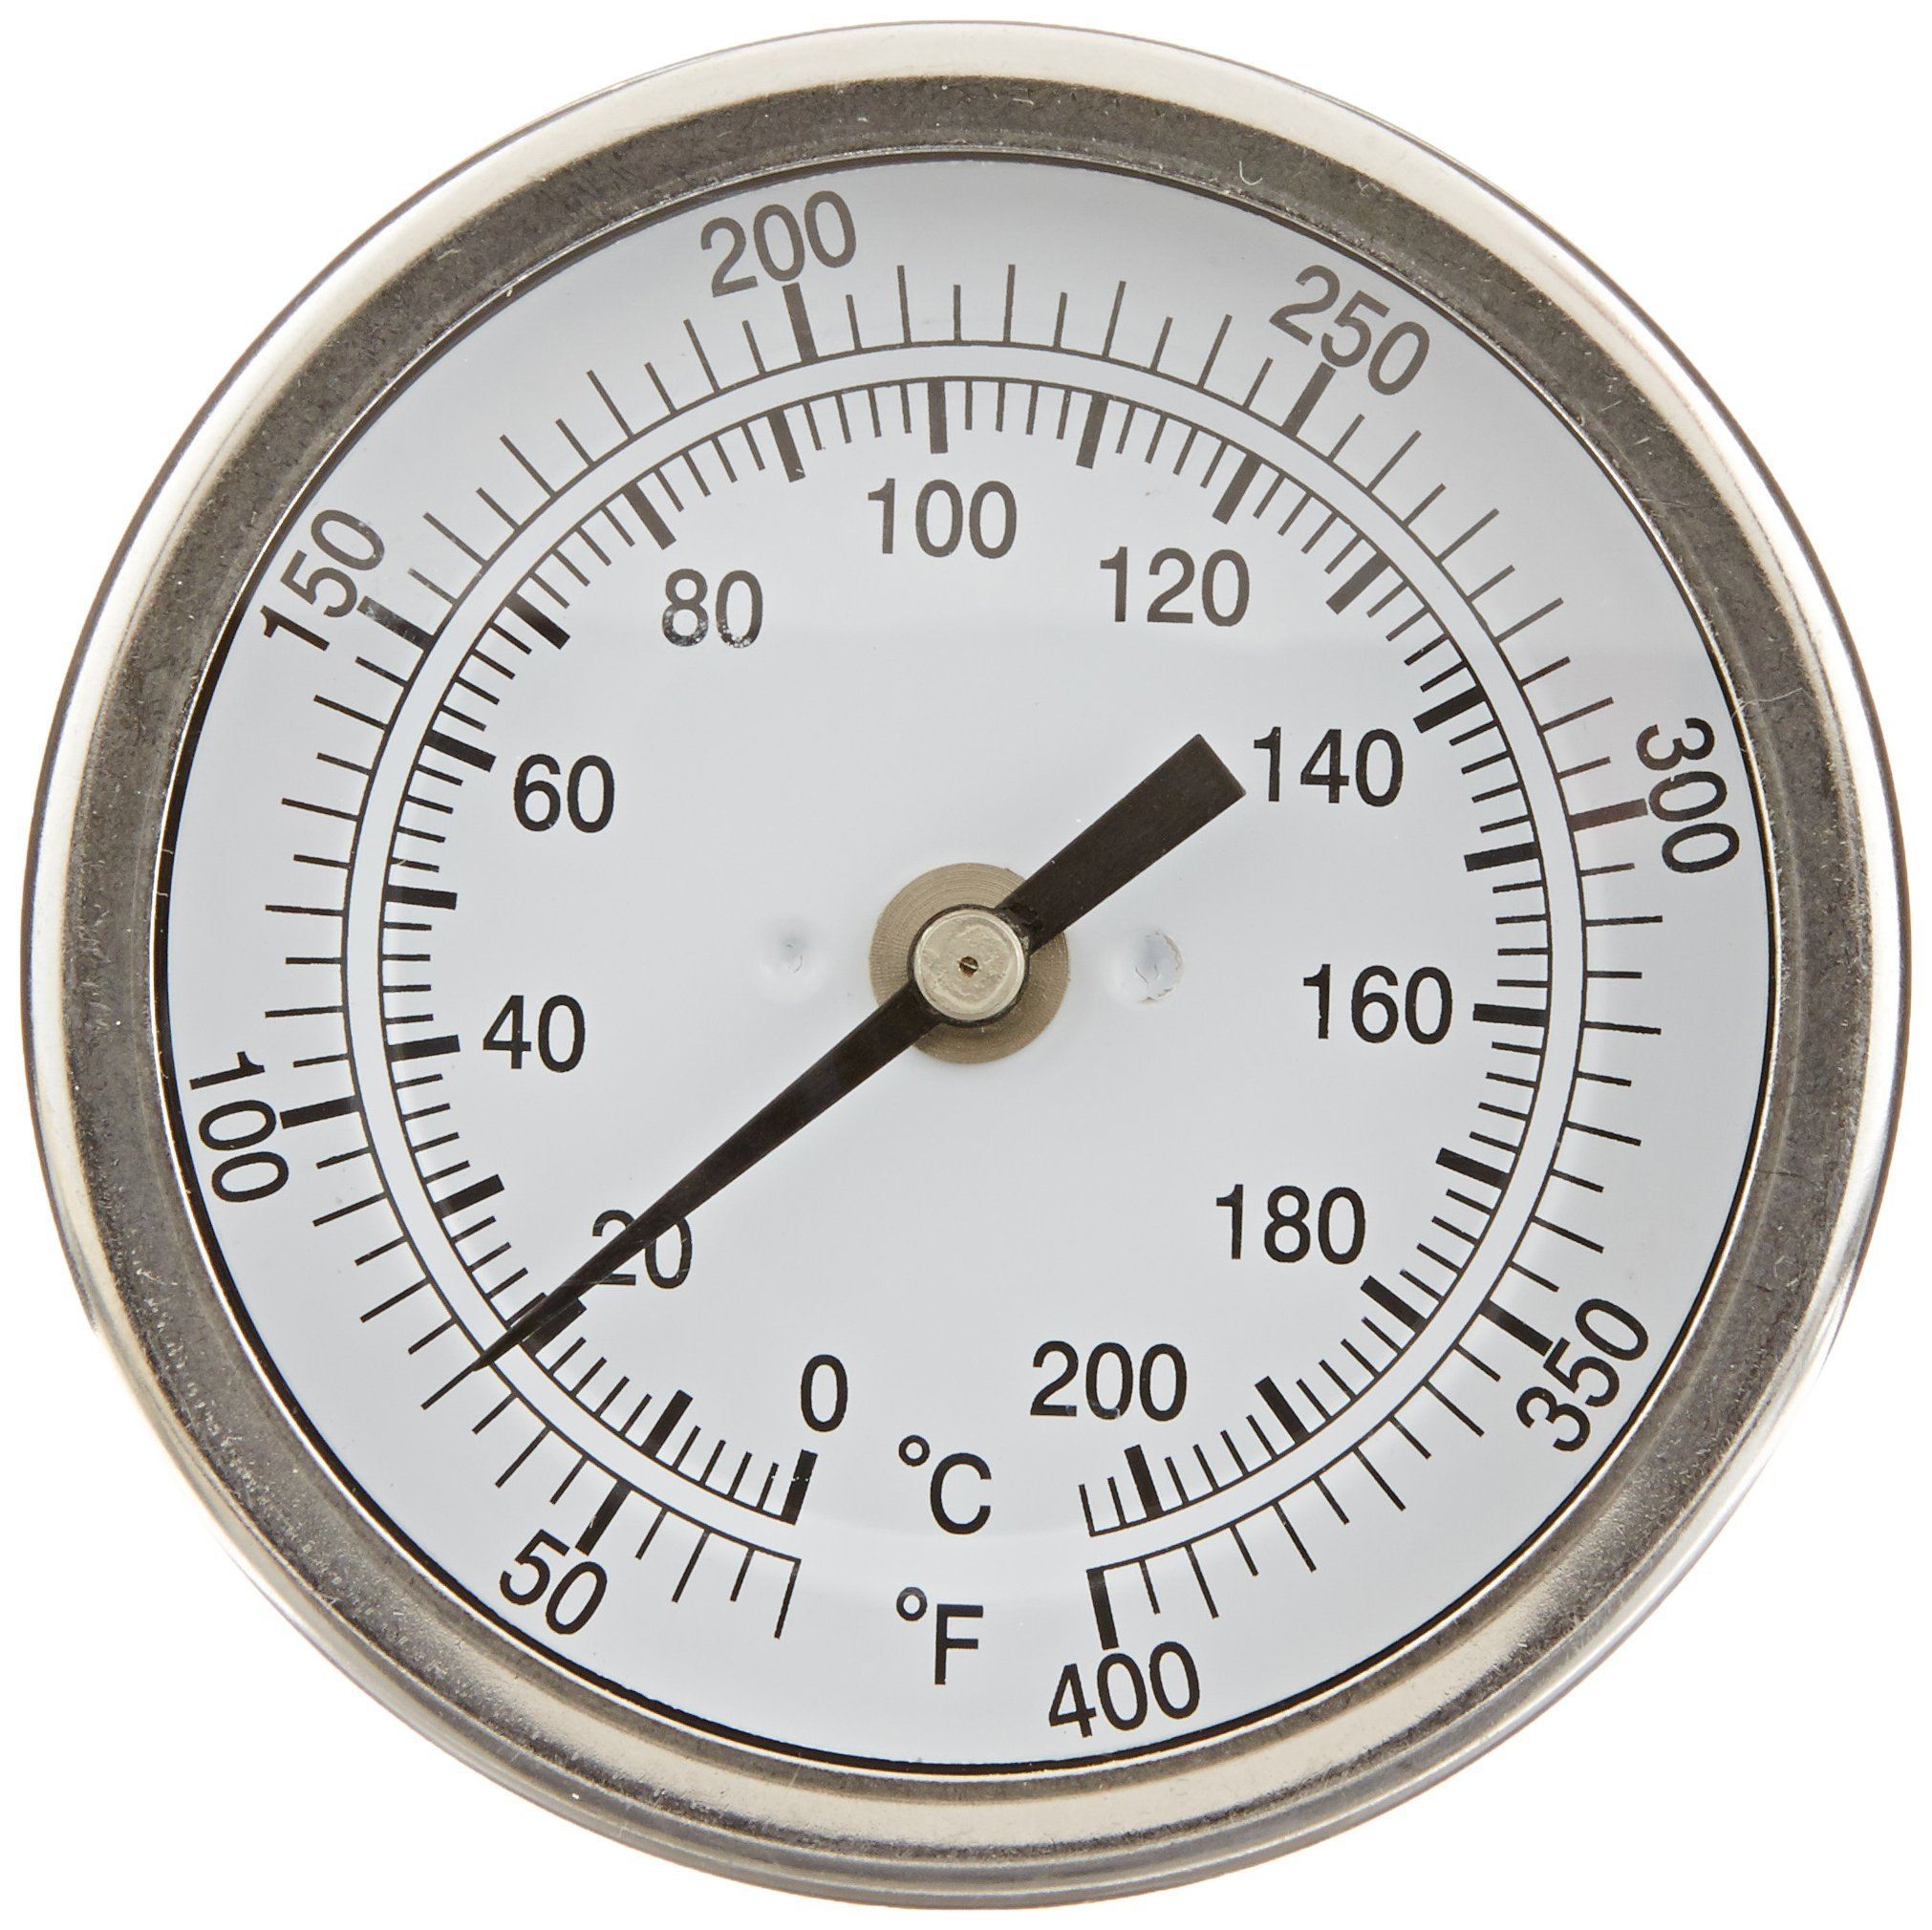 PIC Gauge B3B6-PP 3'' Dial Size, 50/400°F and 10/204°C, 6'' Stem Length, Back Angle Connection, Stainless Steel Case, 316 Stainless Steel Stem Bimetal Thermometer